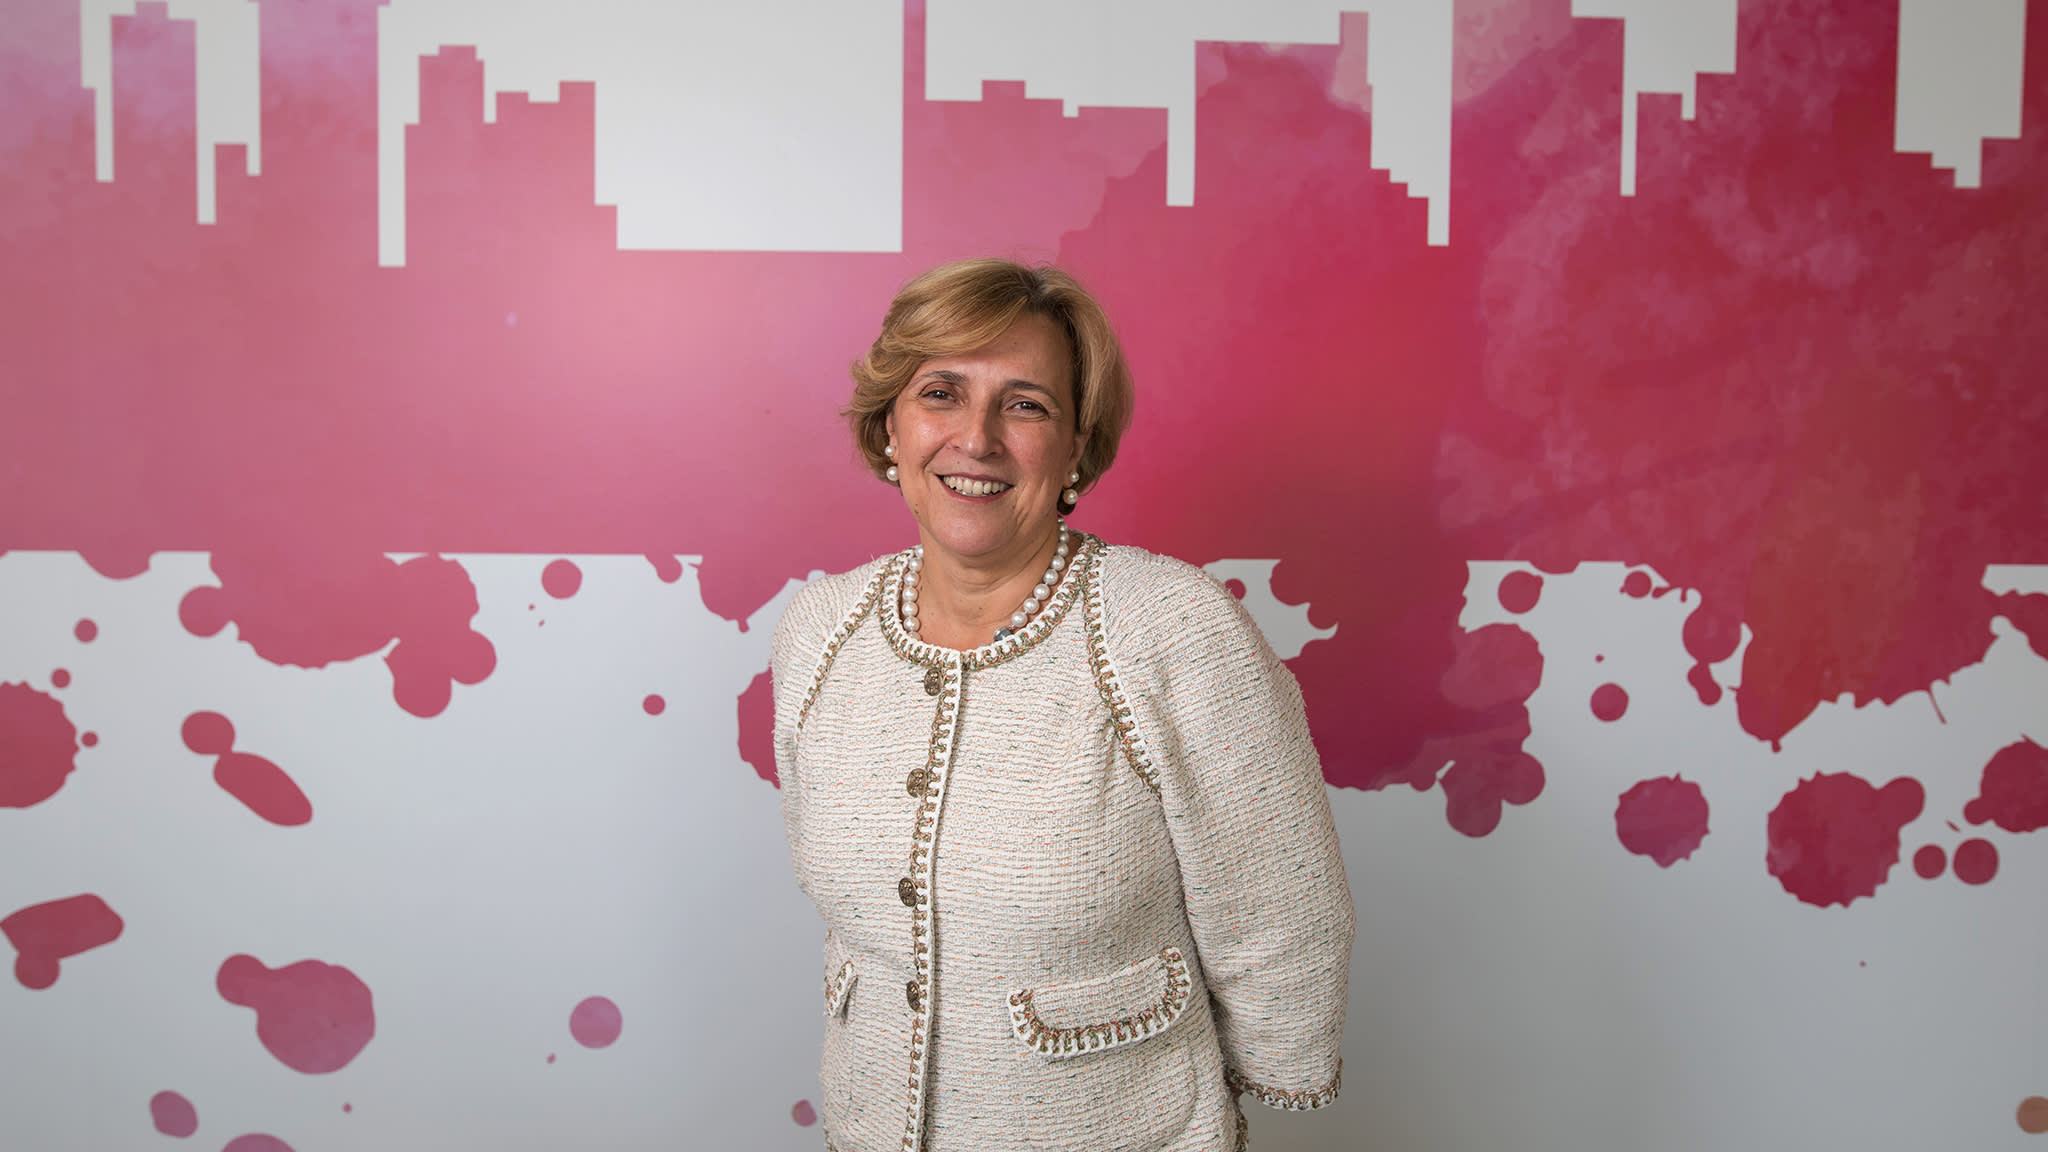 Absa's Maria Ramos: on winning a favourable deal